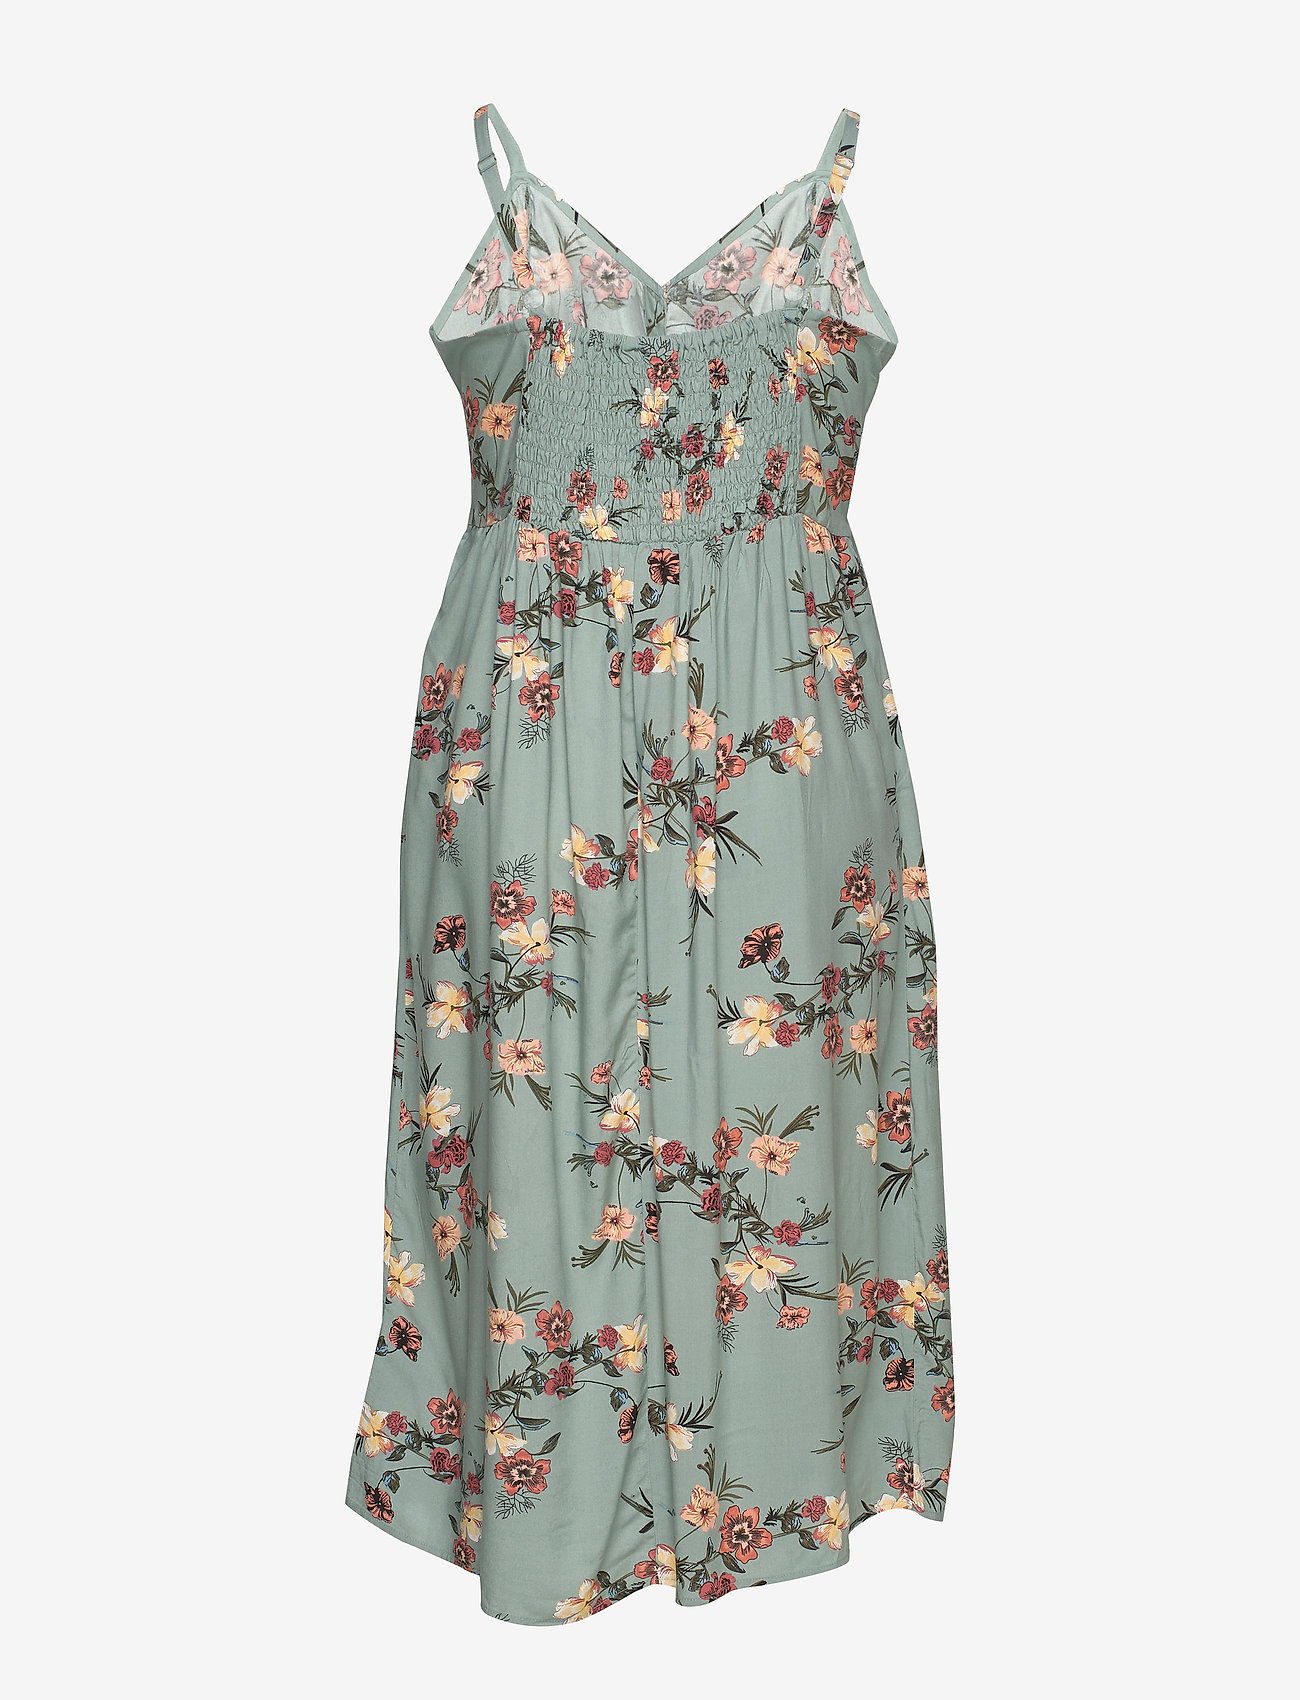 Zizzi Vviga, S/l, Maxi Button Dress - Dresses